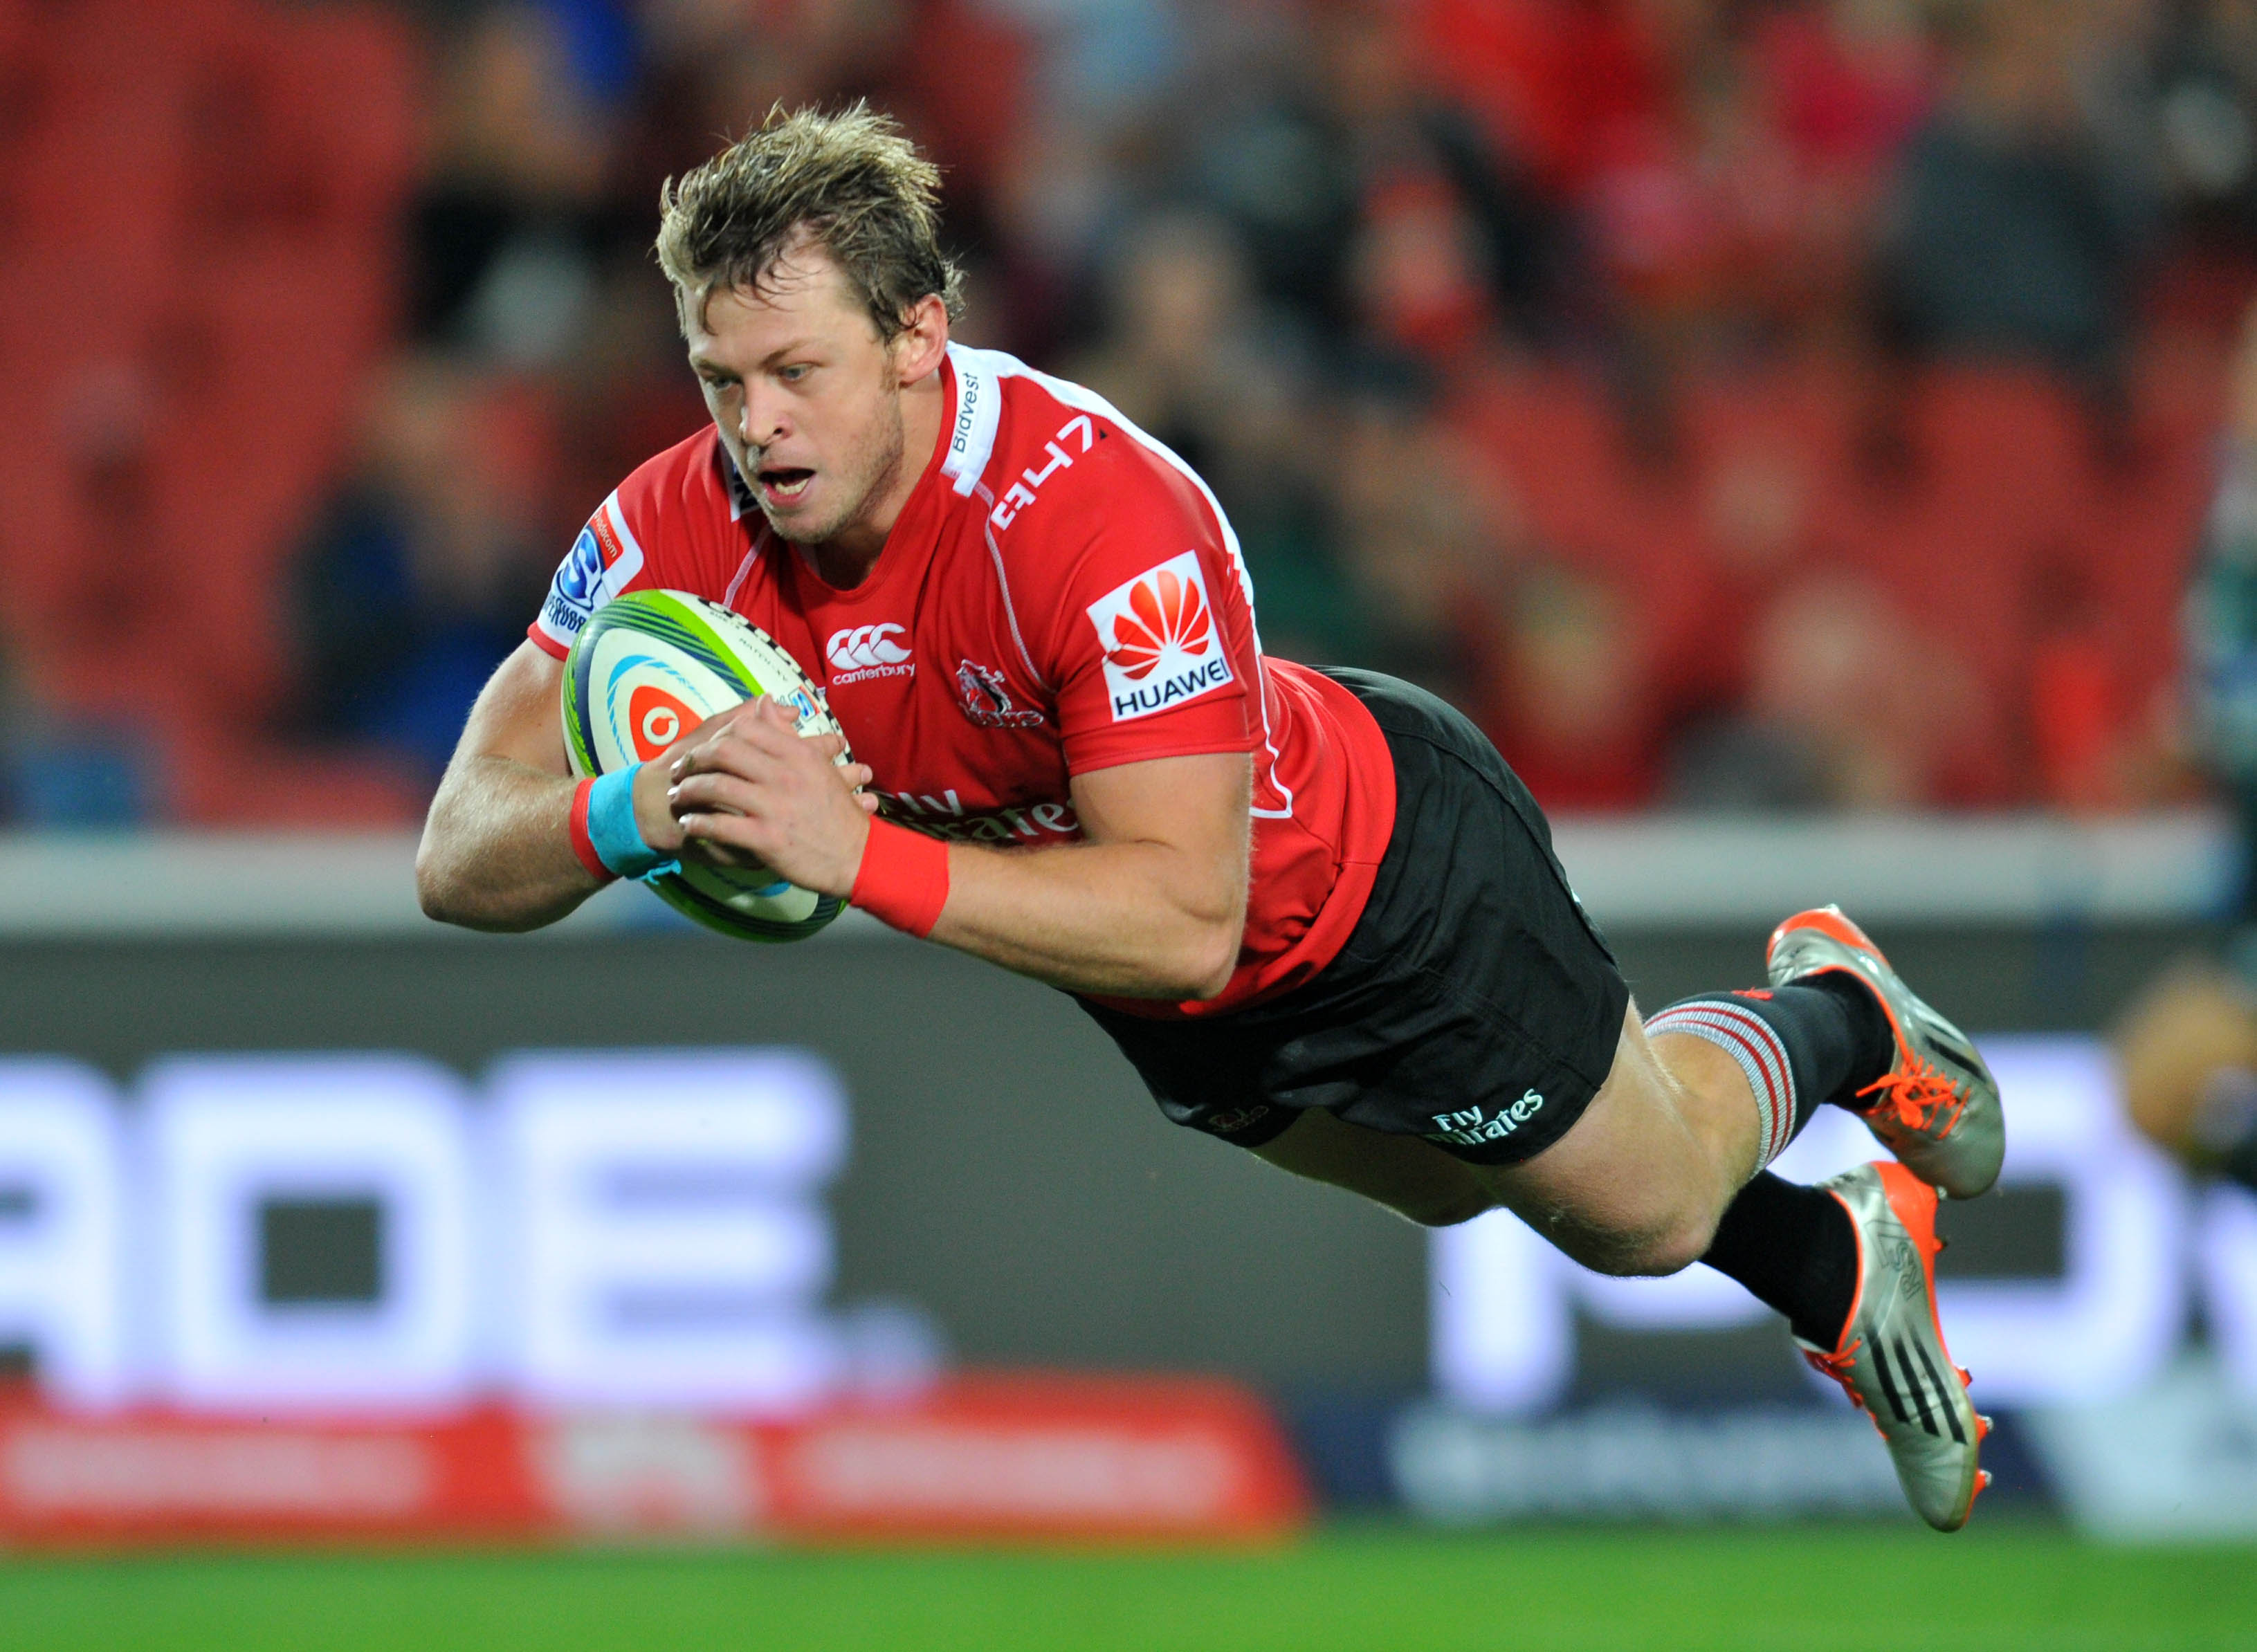 Latest Super Rugby News | Live scores, fixtures and results